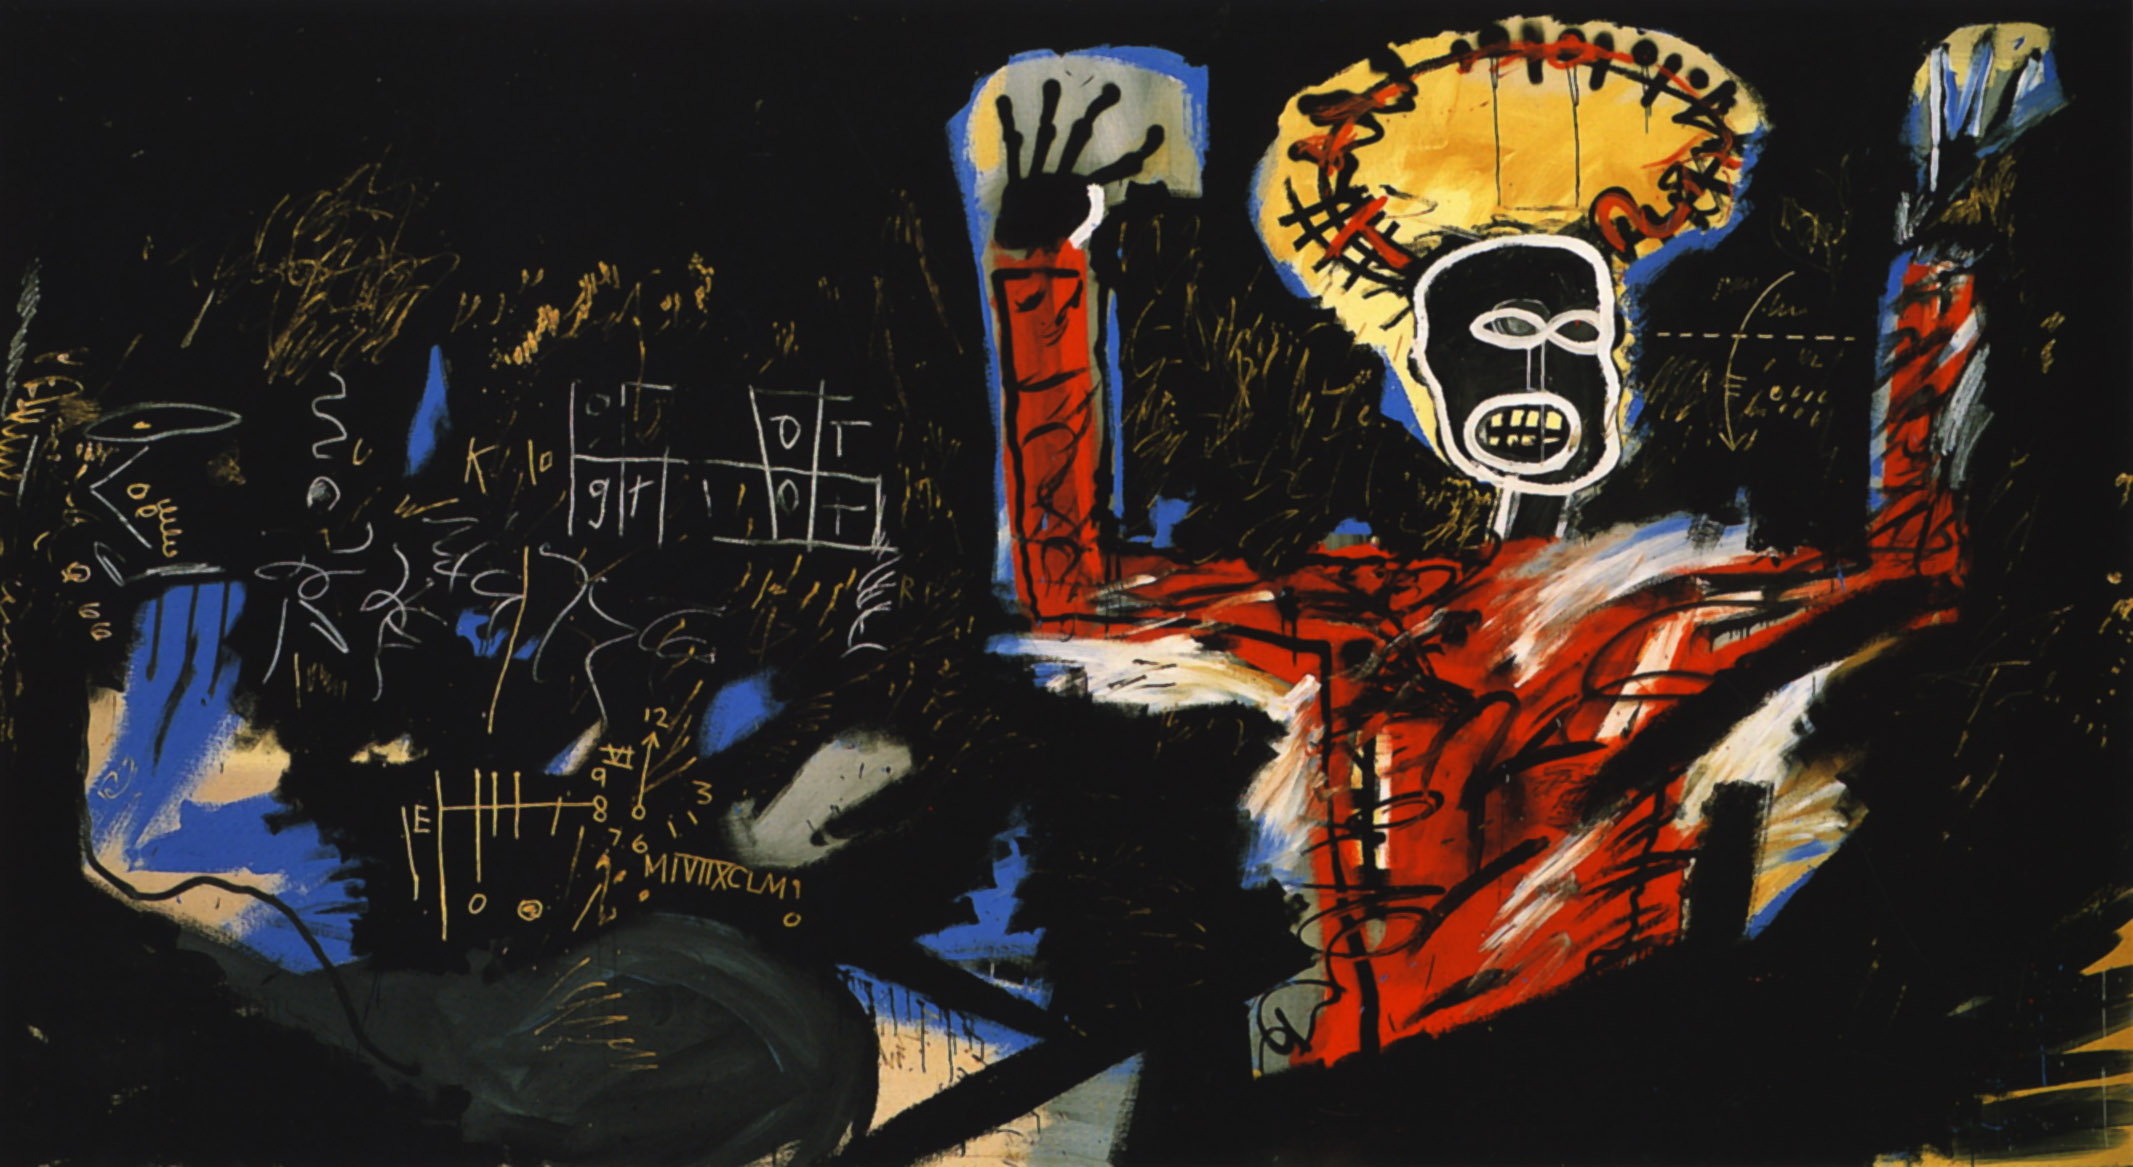 account of the life and works of jean michel basquiat